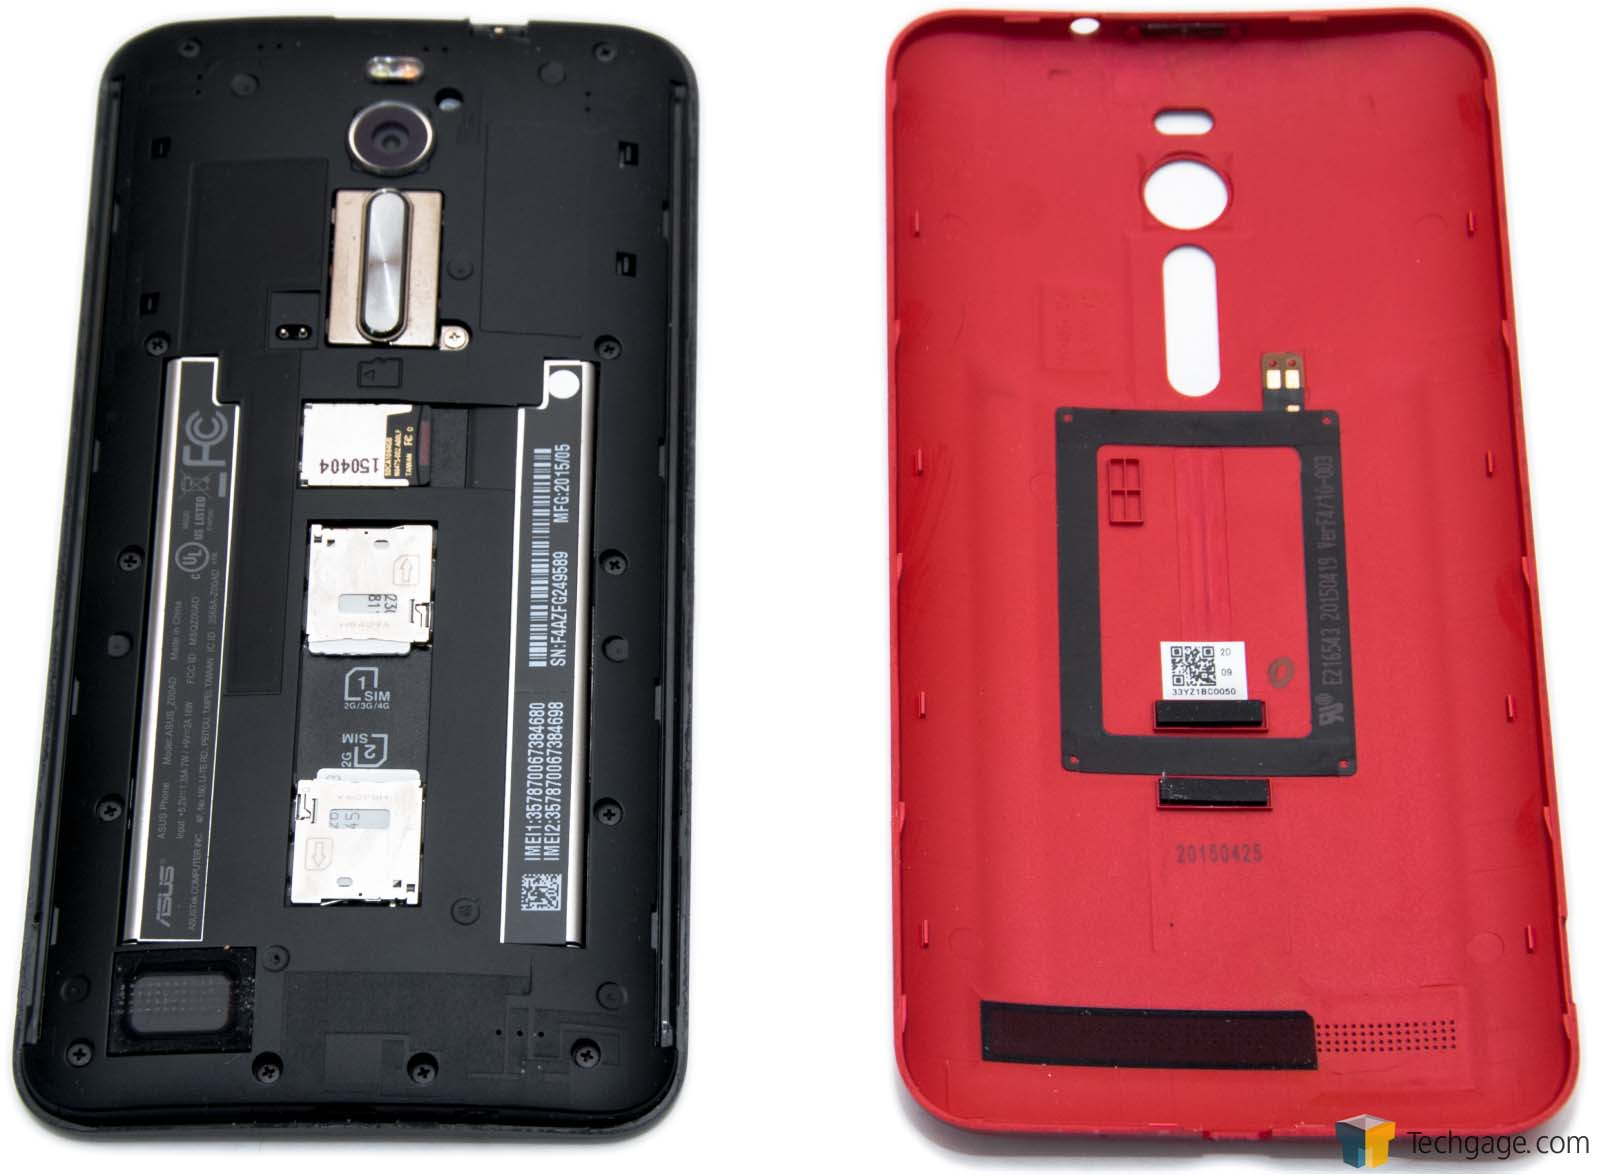 Asus Zenfone 2 Smartphone Review The Budget Android Wonder Techgage Alumunium Bumper Case 55